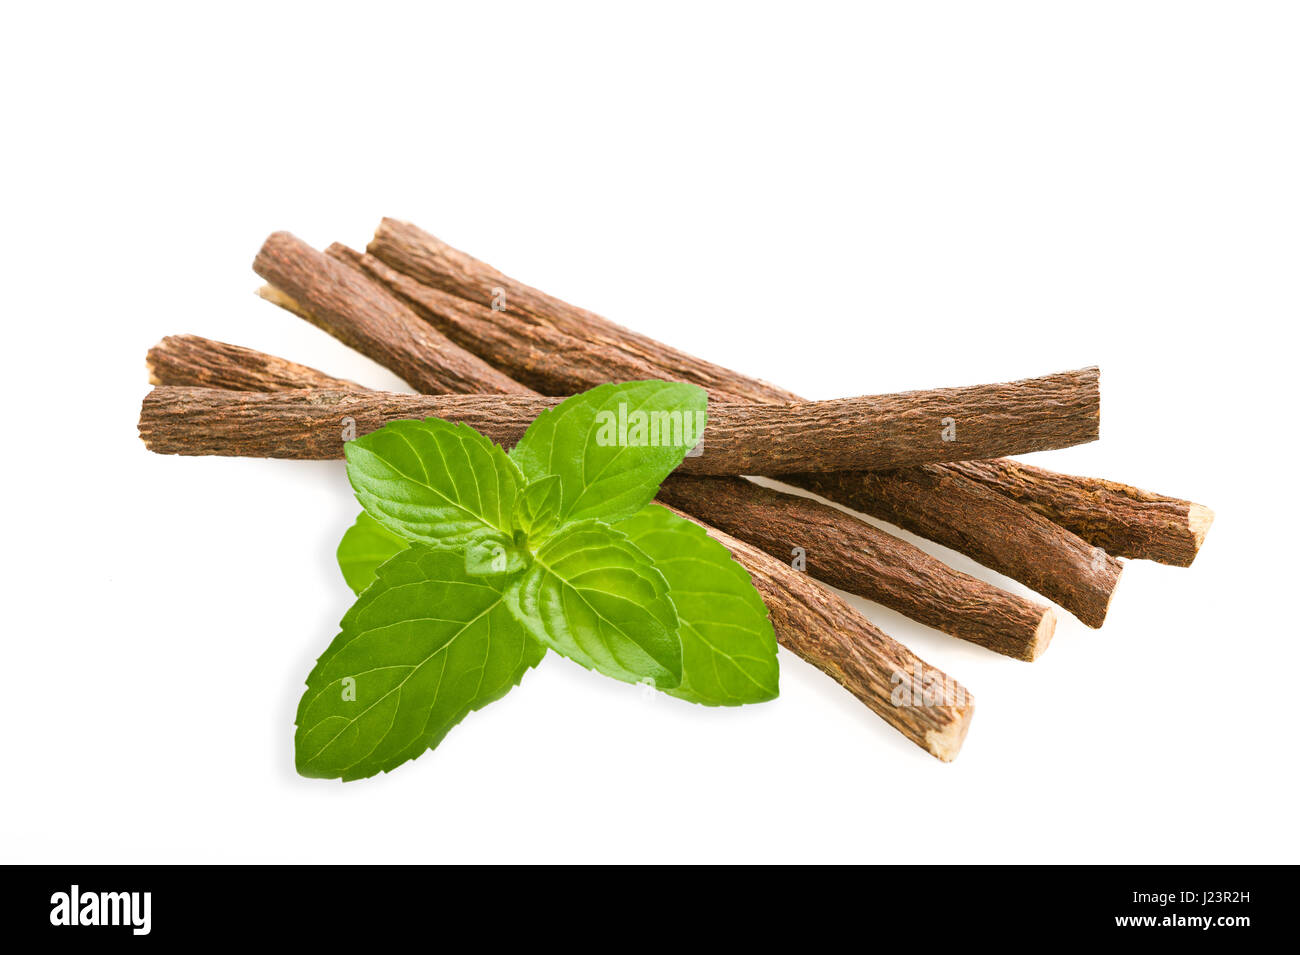 Roots licorice and mint isolated on white - Stock Image